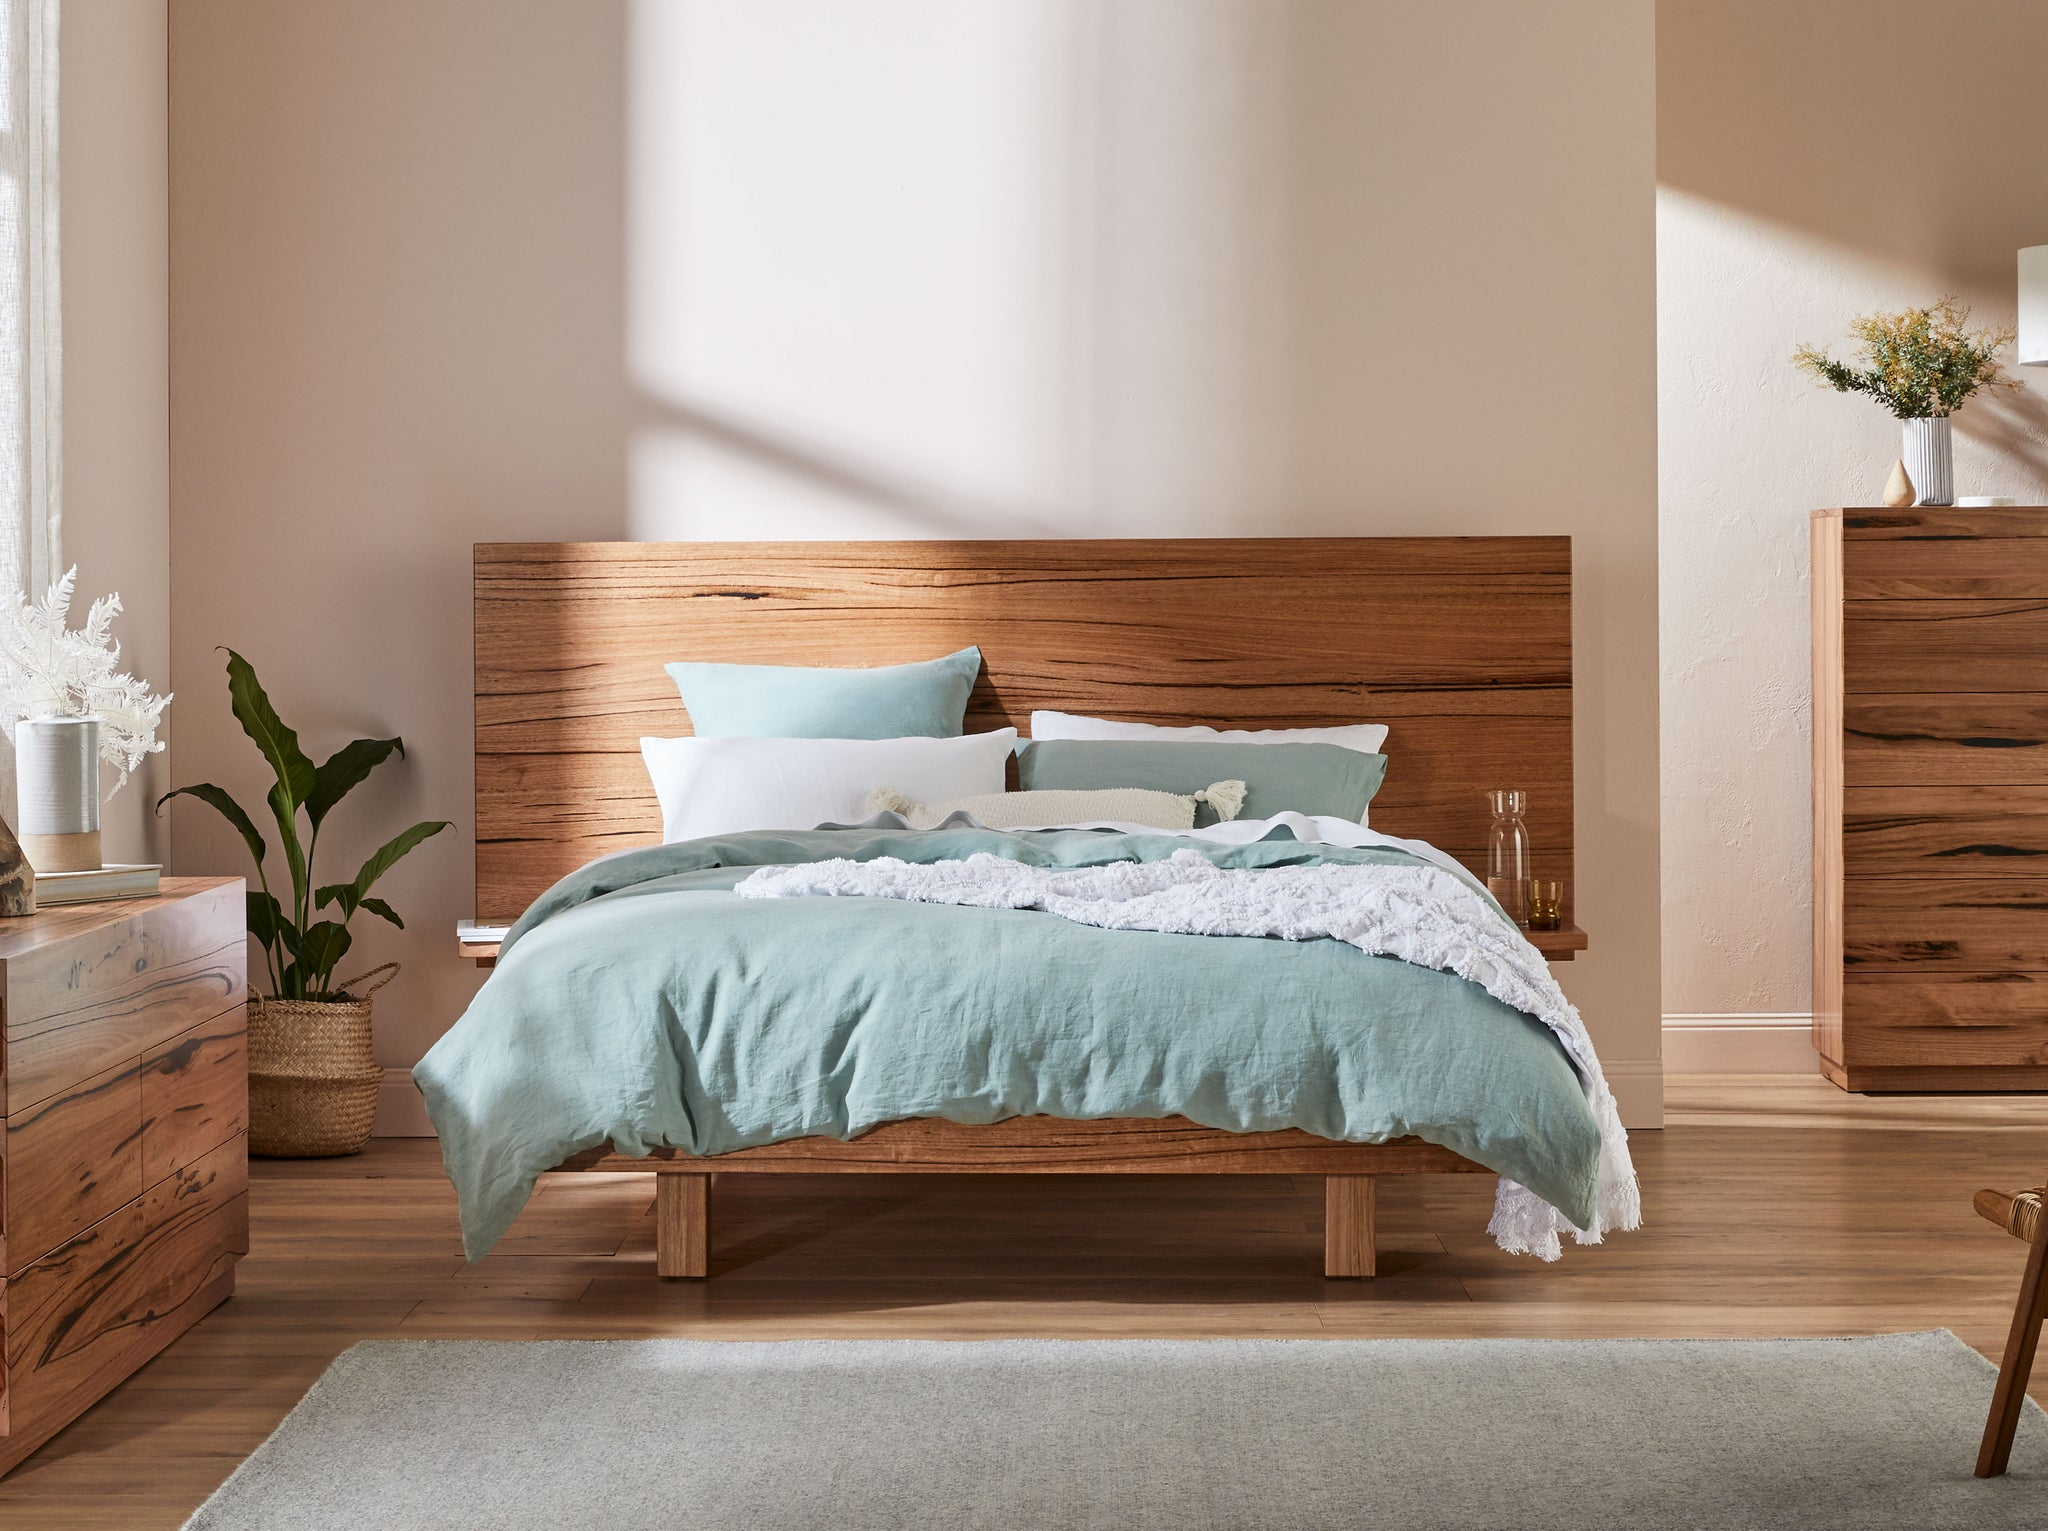 Silhouette Extended Headboard With Shelves Floating Base Snooze